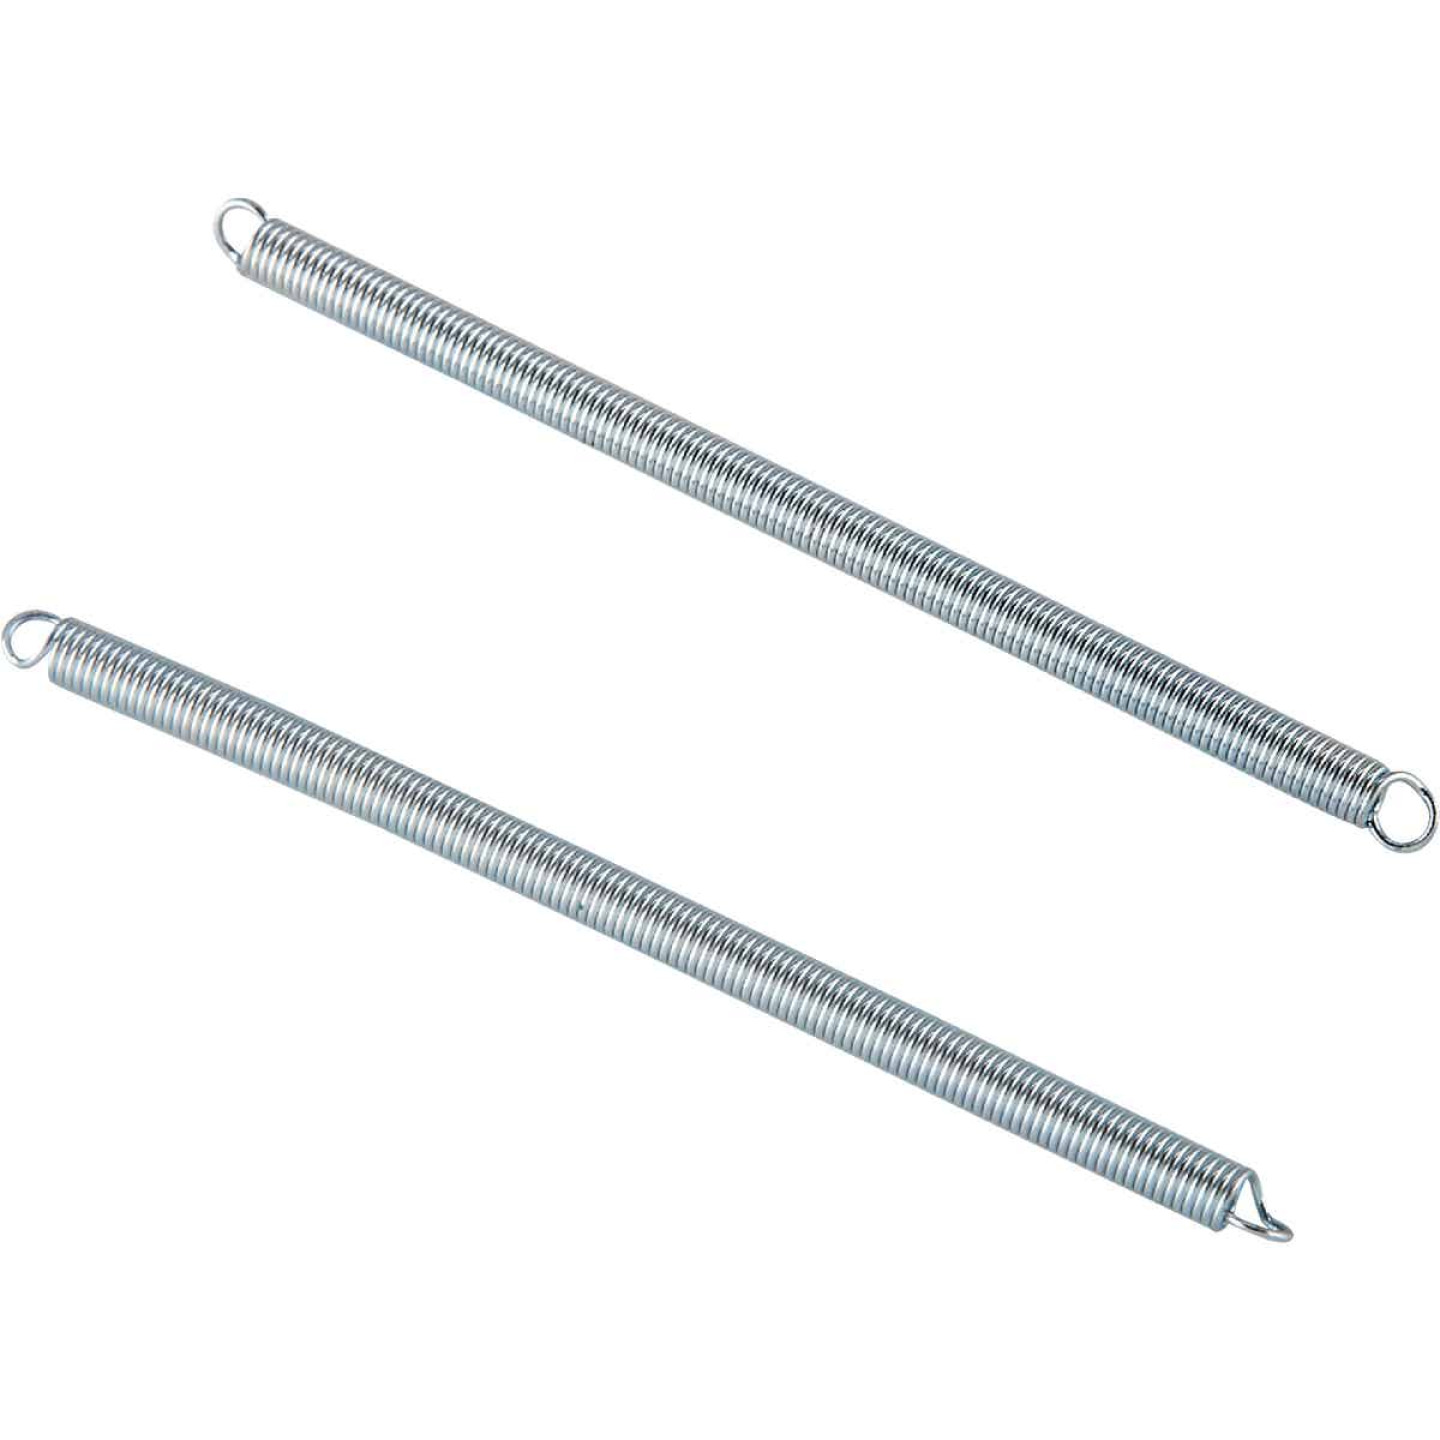 Century Spring 2-7/16 In. x 3/4 In. Extension Spring (2 Count) Image 1